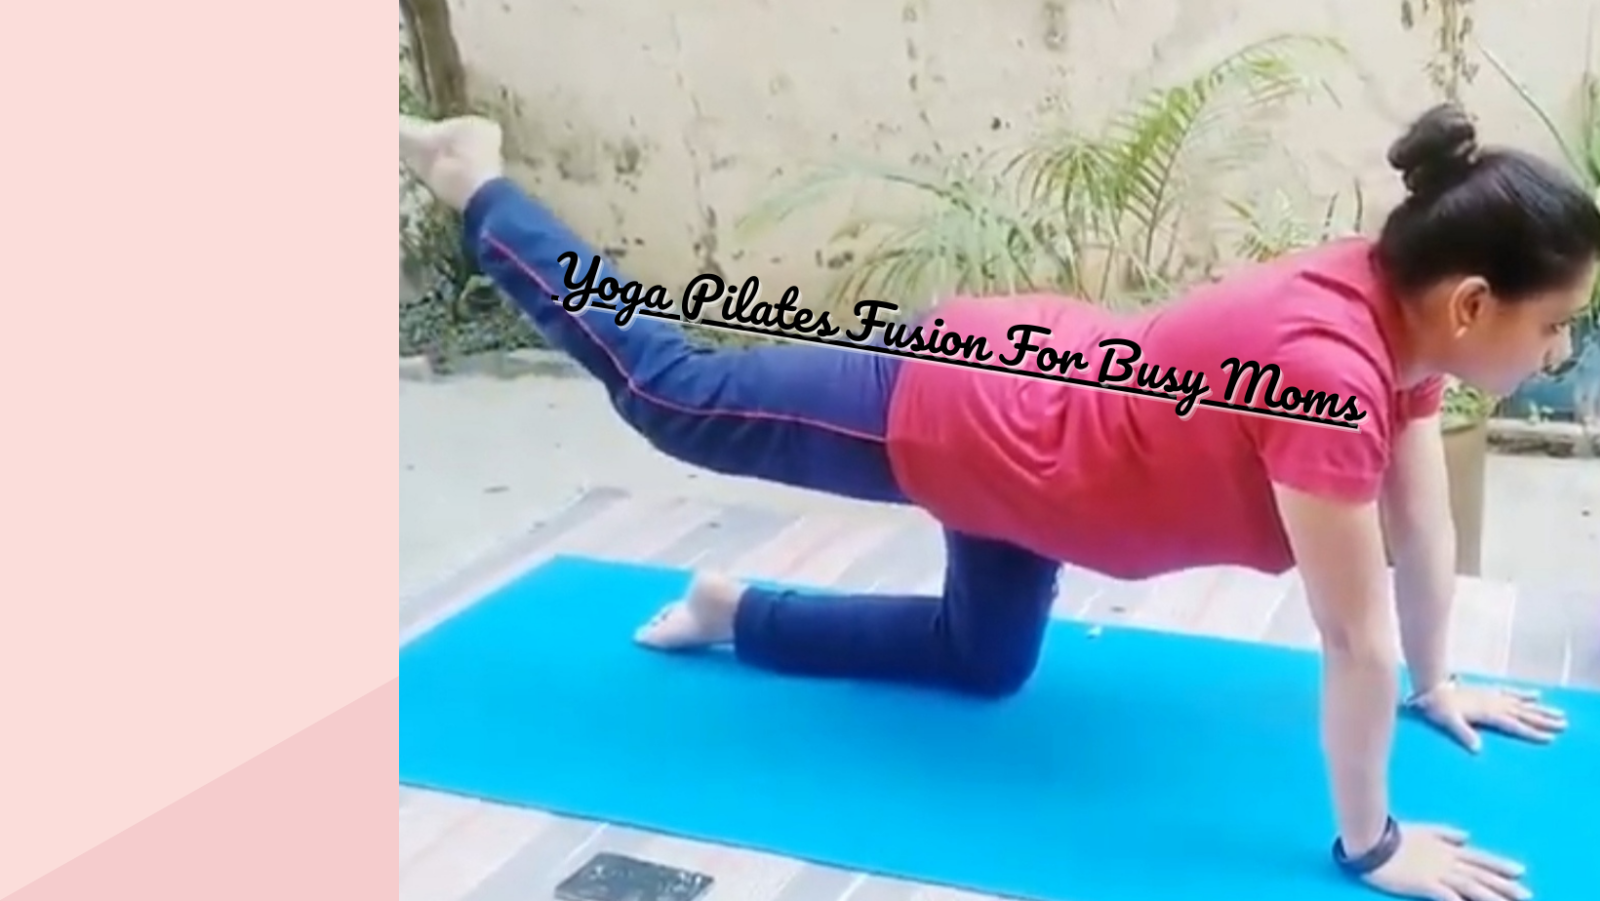 Yoga pilate's featured